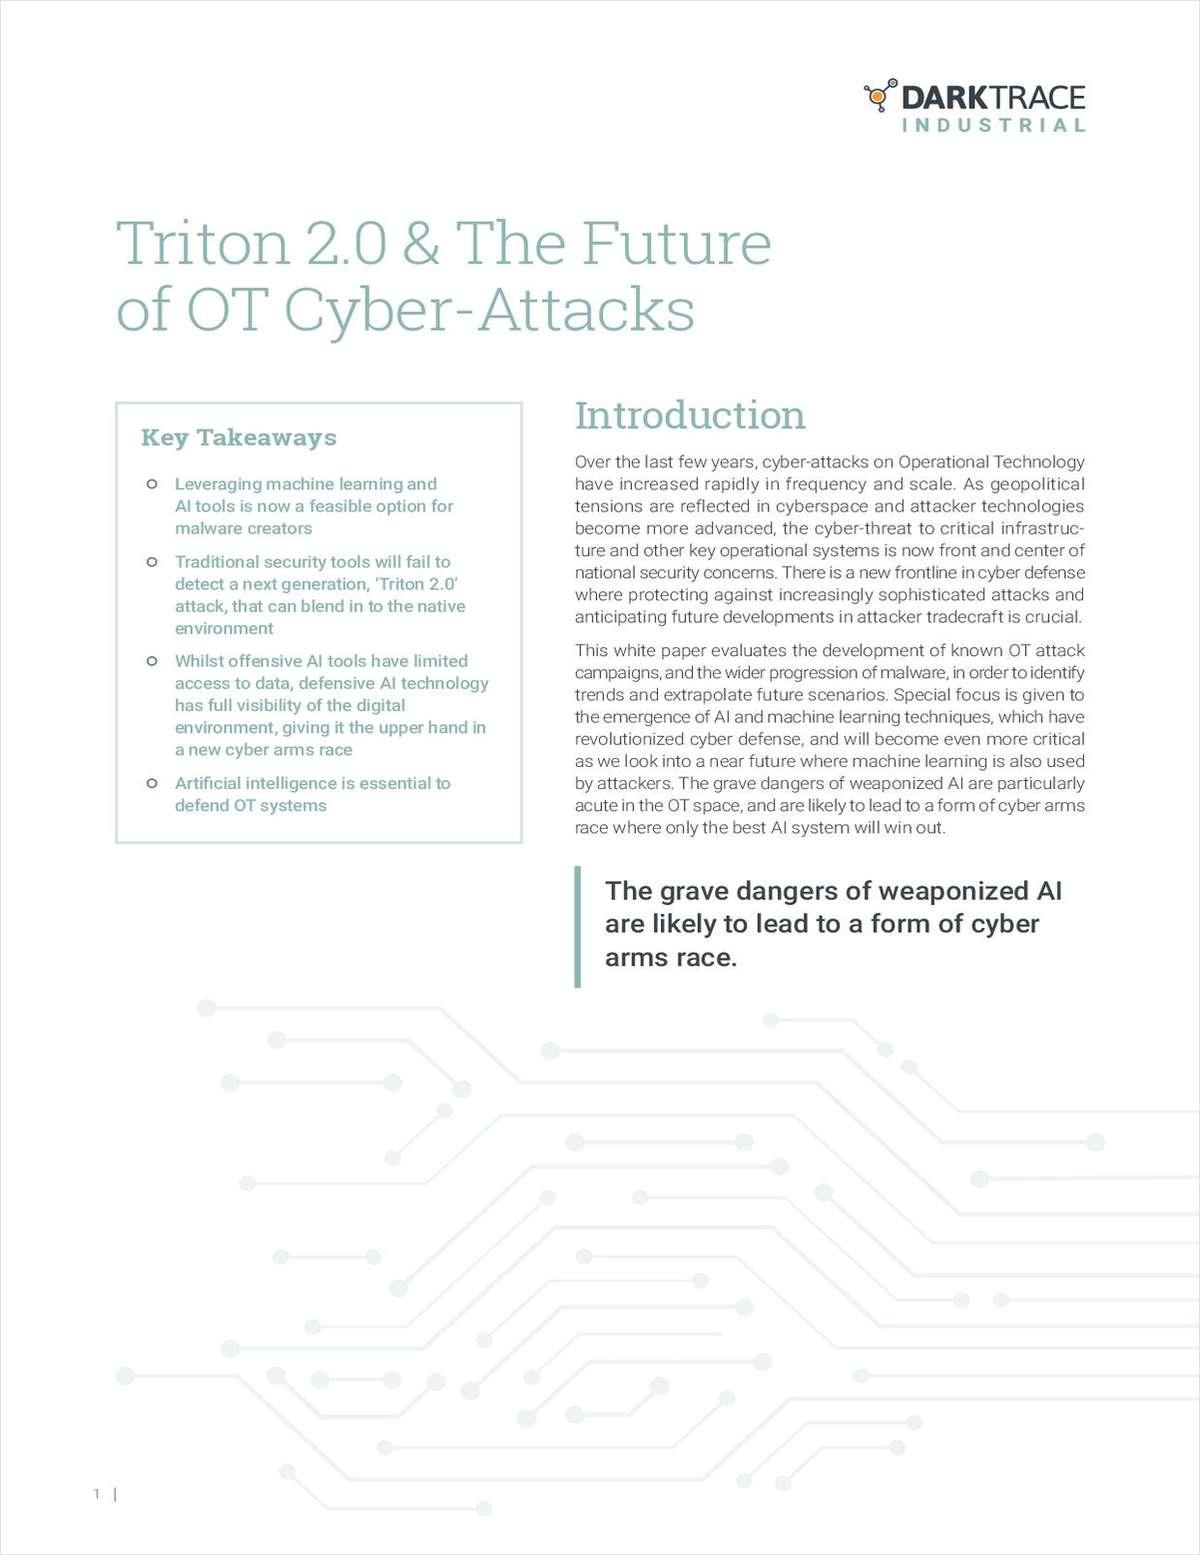 Triton 2.0 & The Future of OT Cyber-Attacks